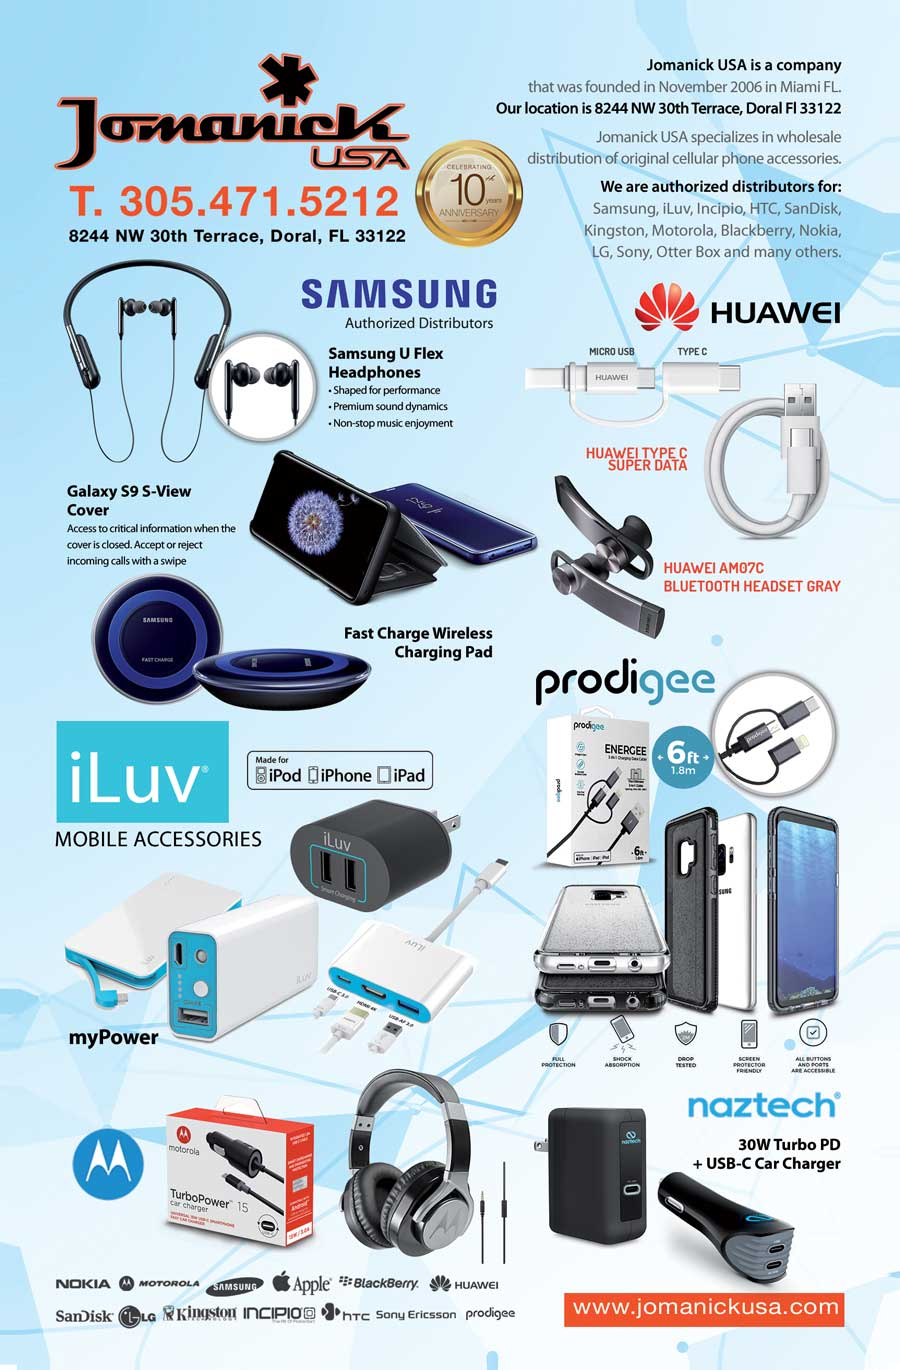 Jomanick USA: Wholesaler of cell phone accessories